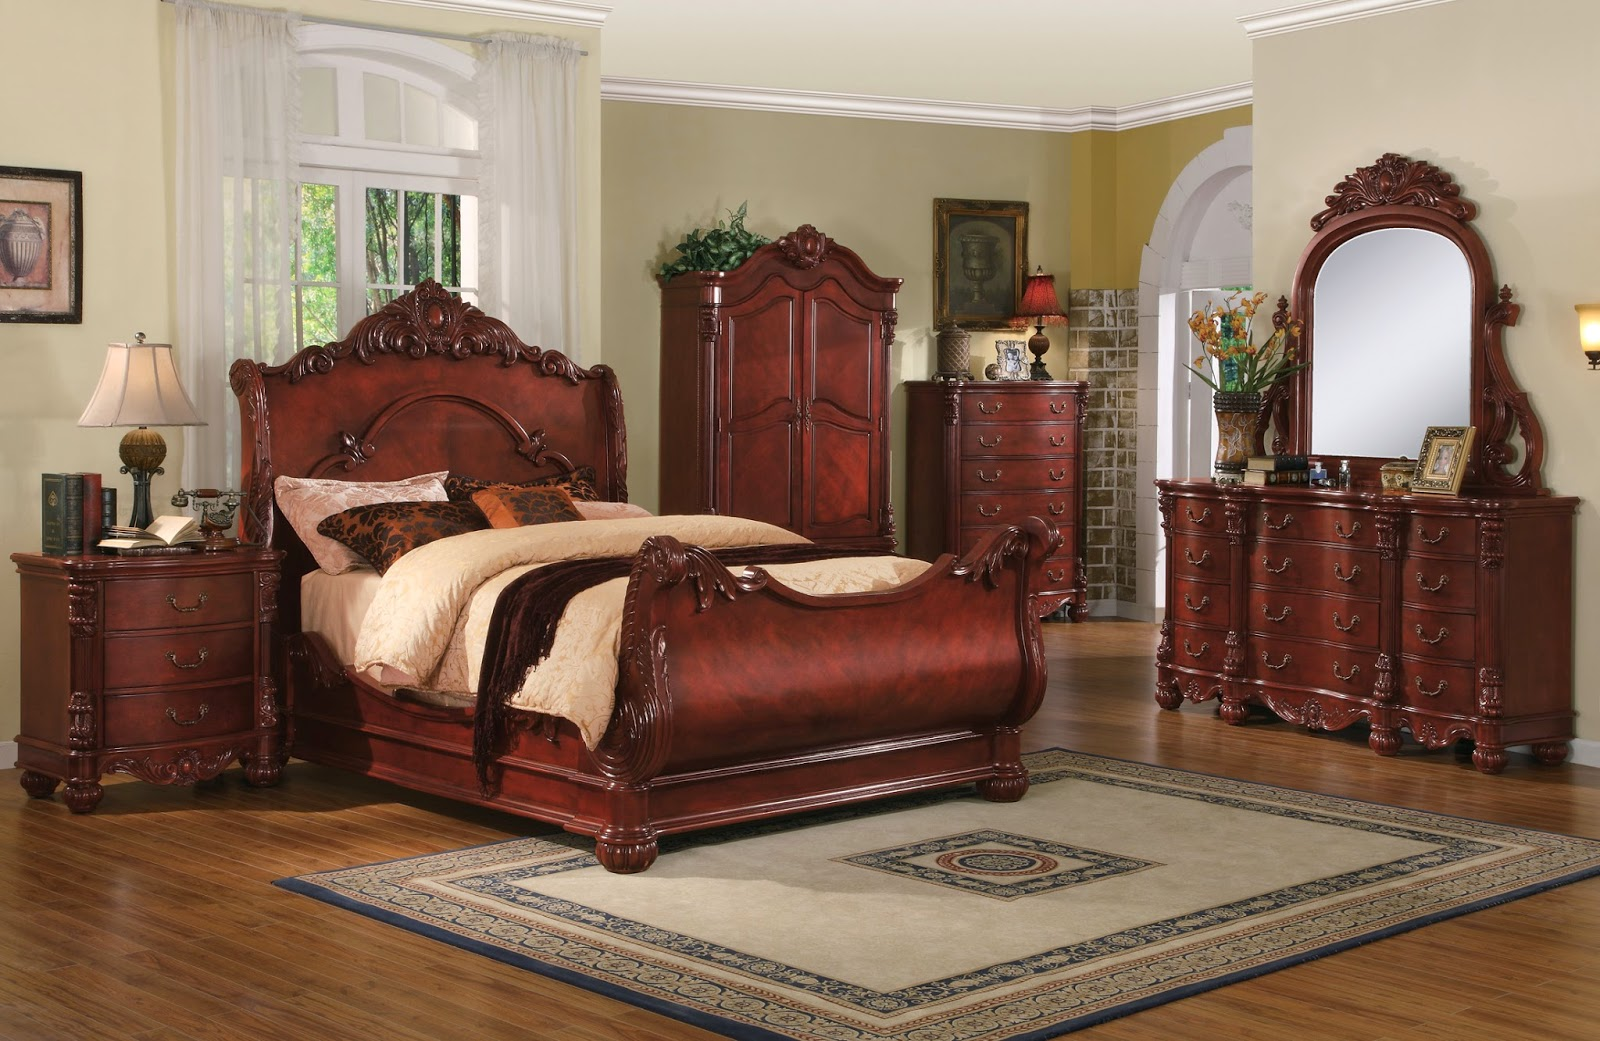 They Are One Of The Most Popular Furniture Selling Company In Arizona And  They Are Successfully Manufacturing Stylish And Affordable Home Office  Furniture ...